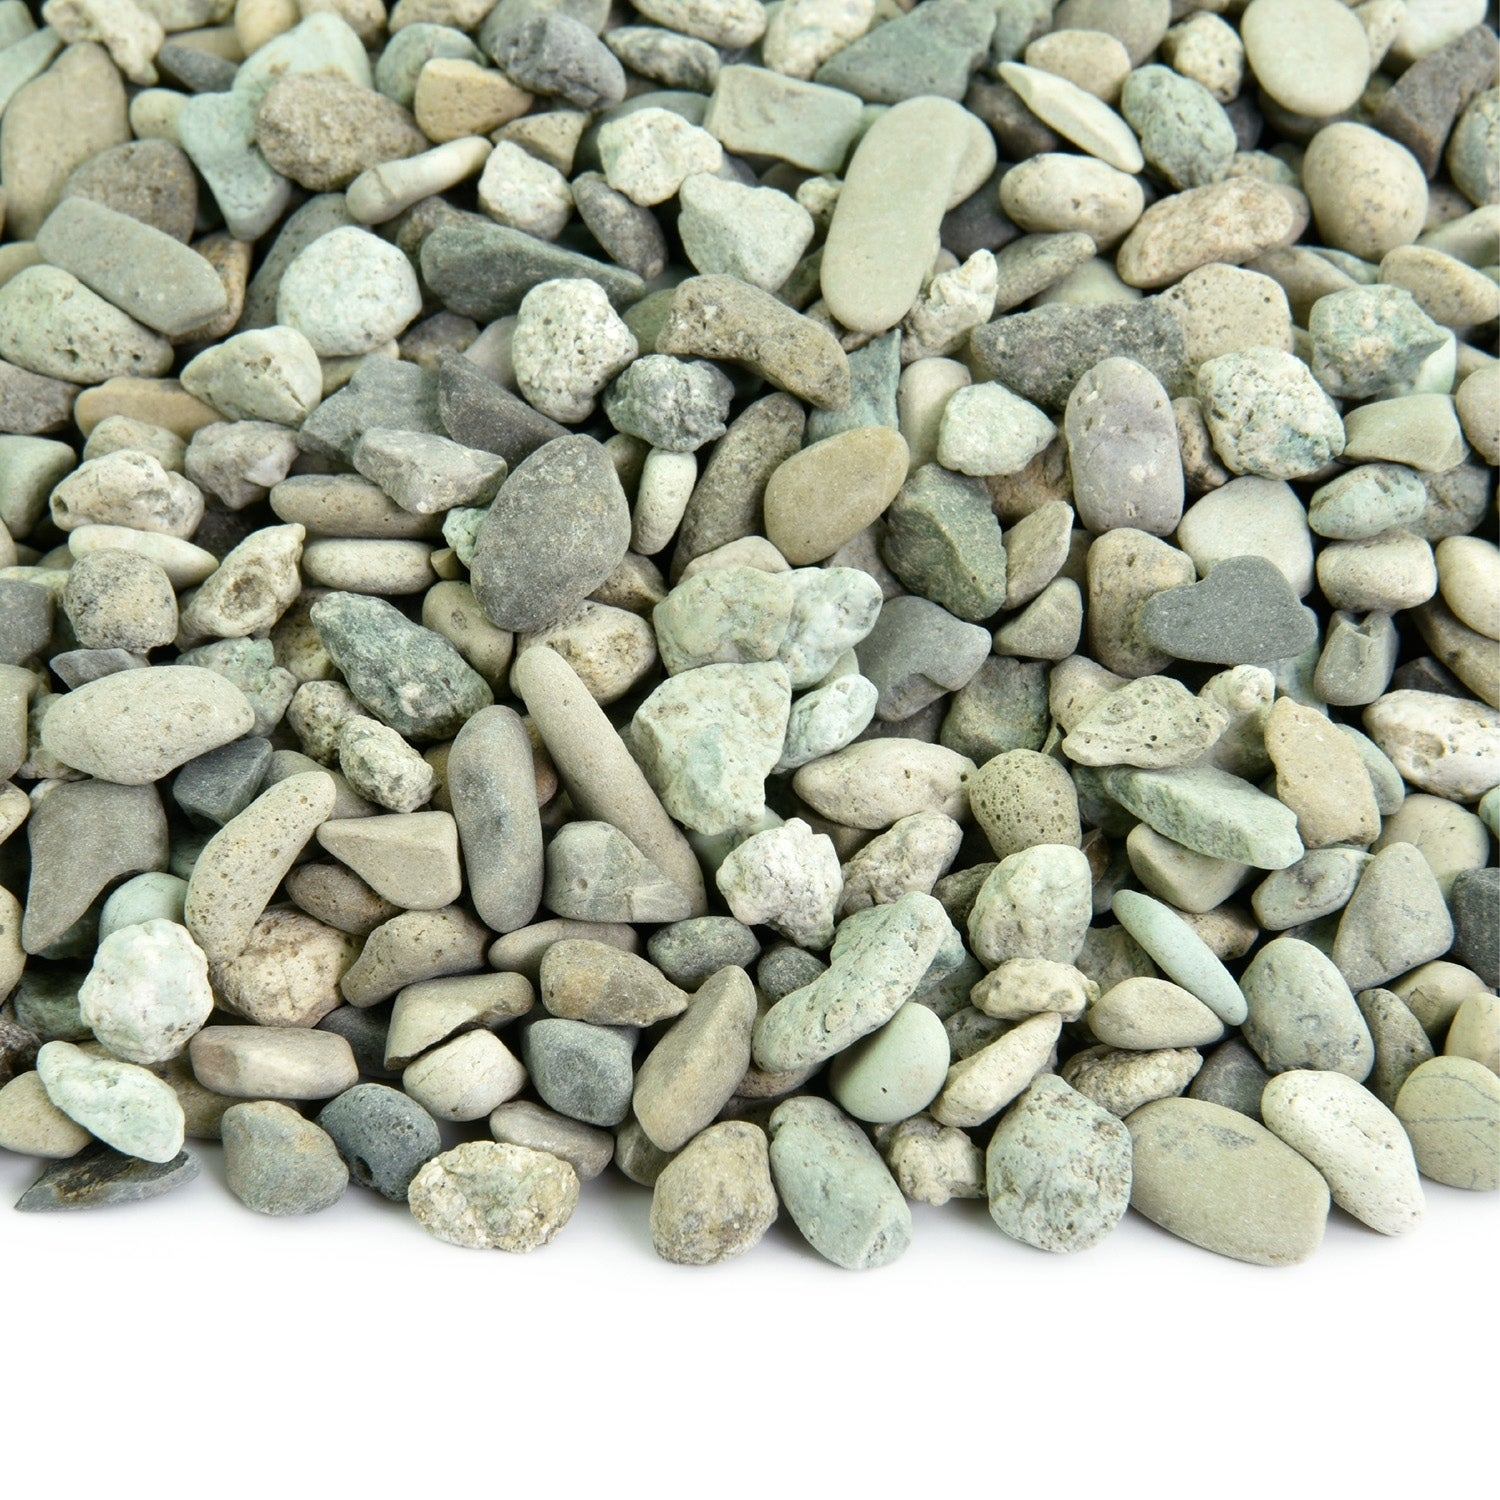 Polynesian Pebble 20 Lbs Natural Decorative Stones Smooth White Rock Landscaping Gardening Potted Plants And Terrariums Overstock 30509836